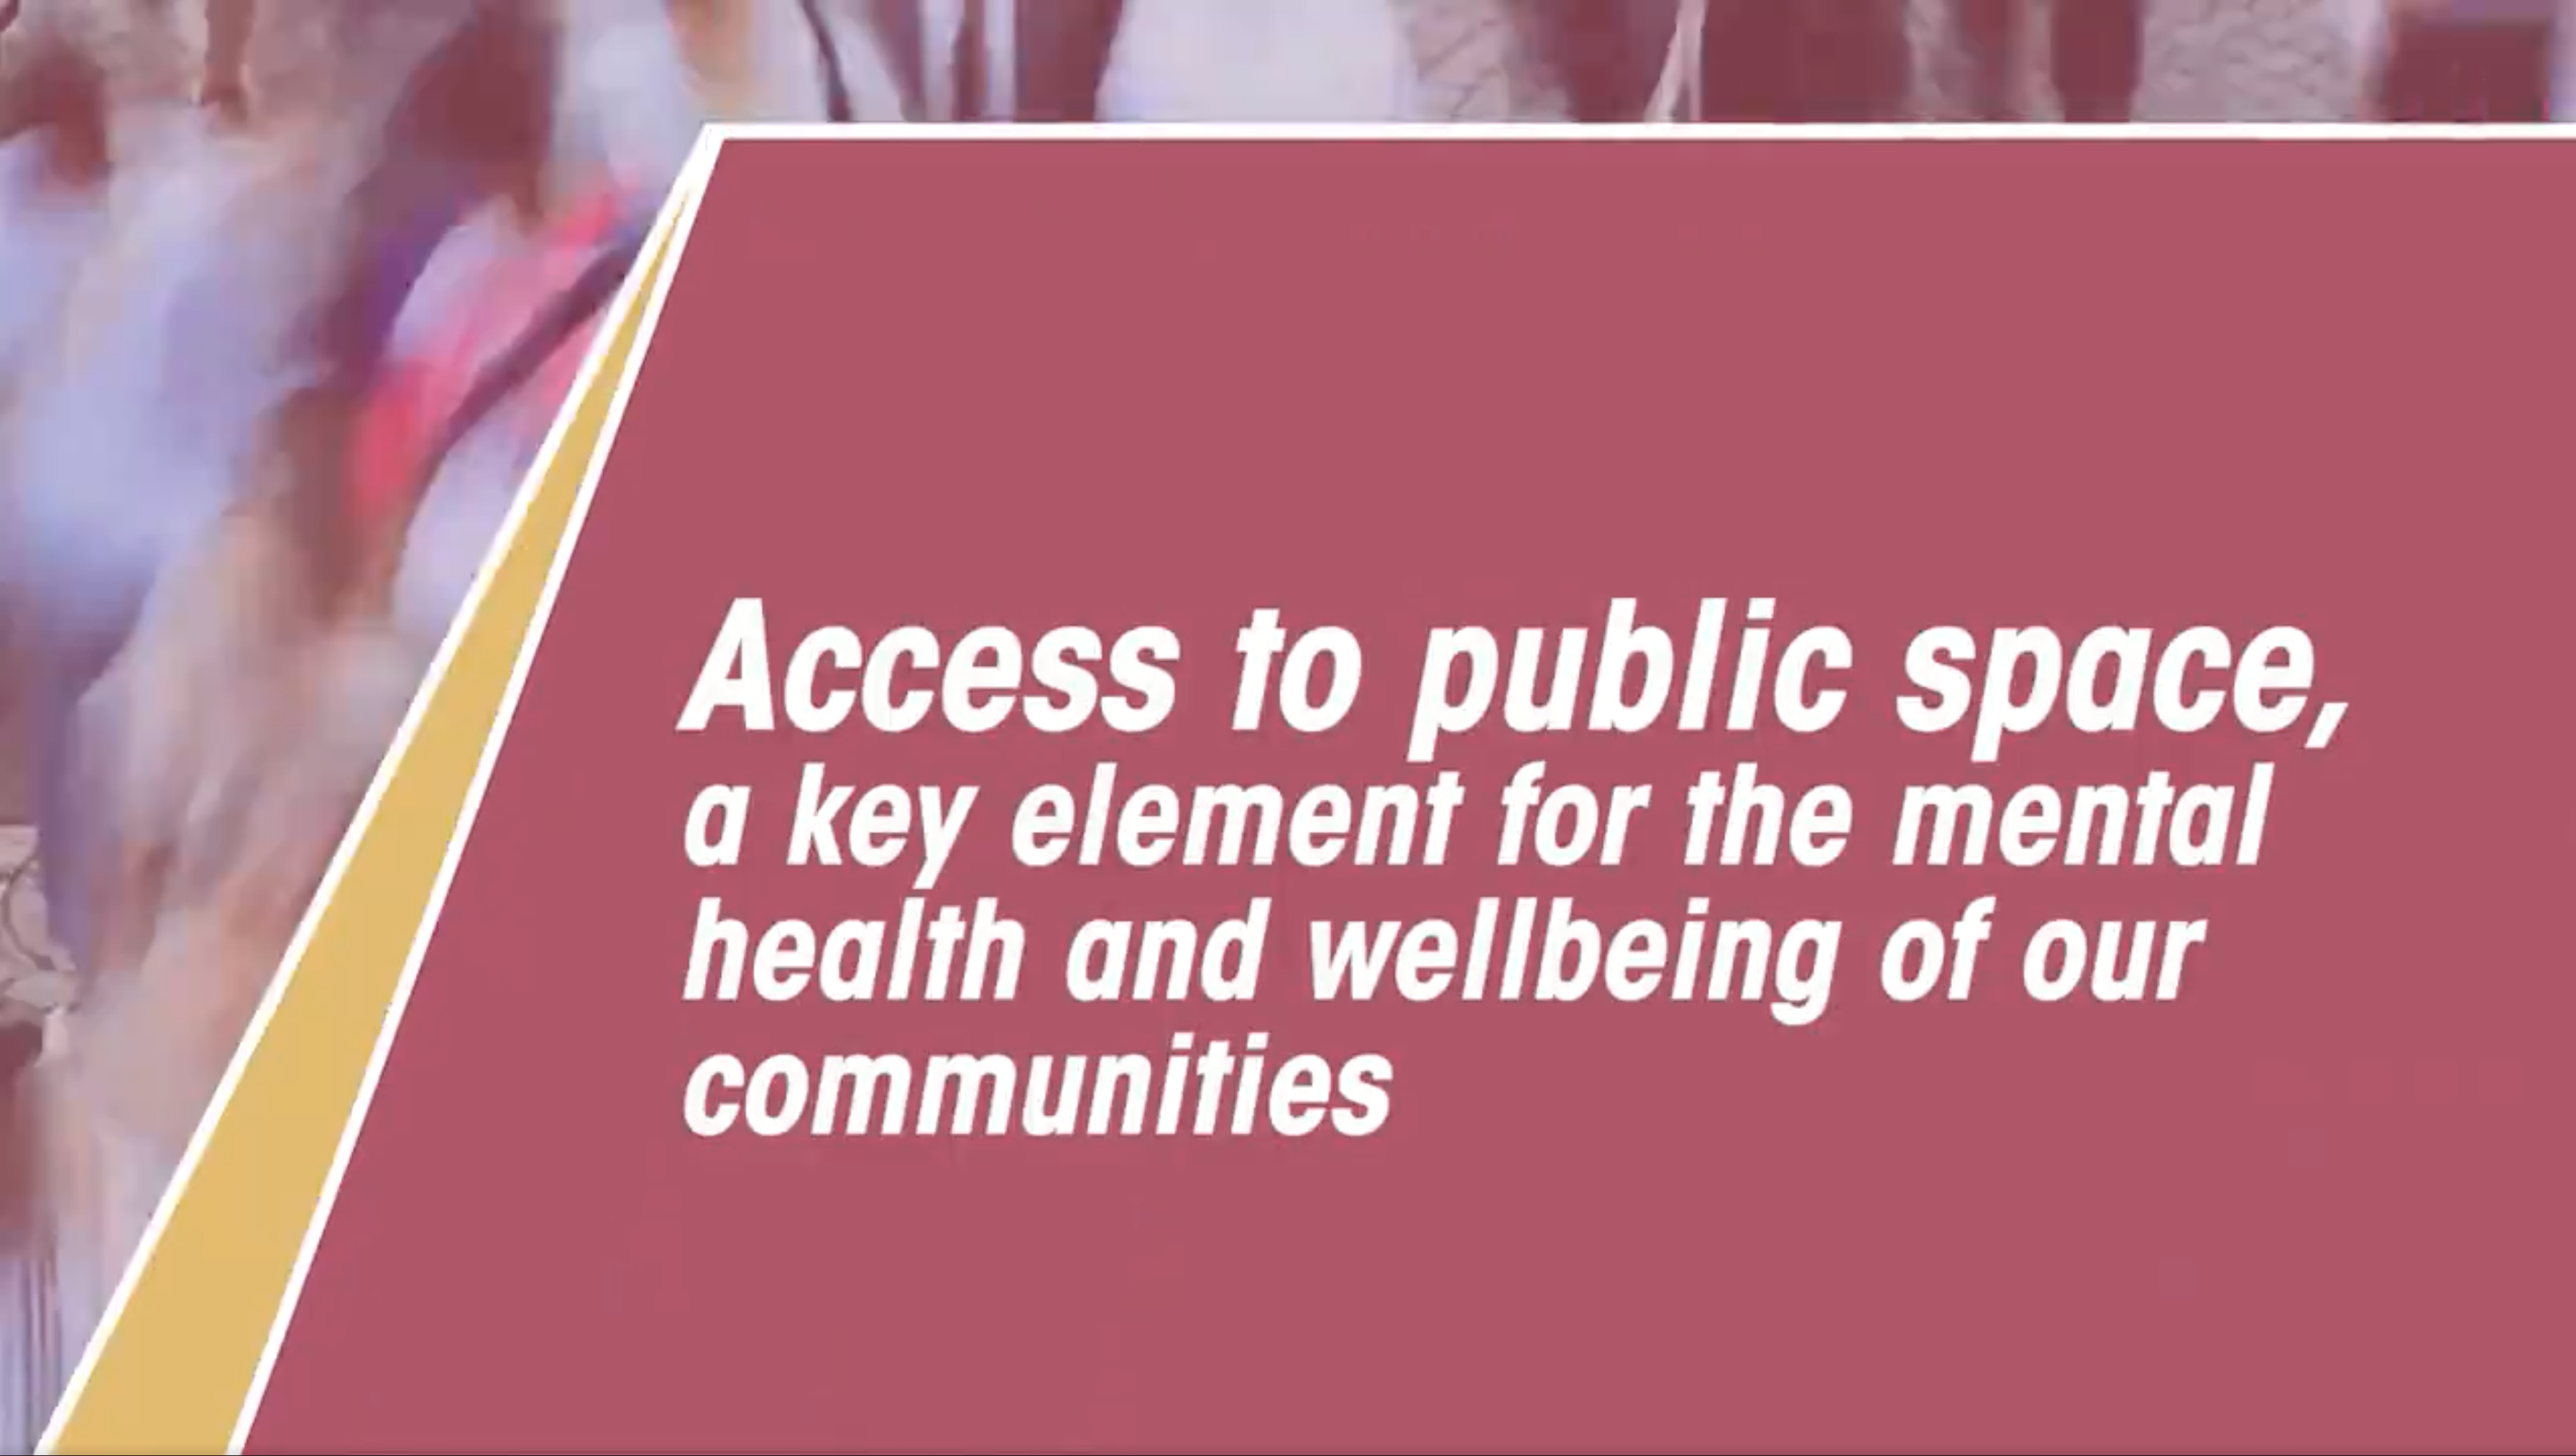 Colorful banner with text written on it: Access to public space: a key element for the mental health and wellbeing of our communities